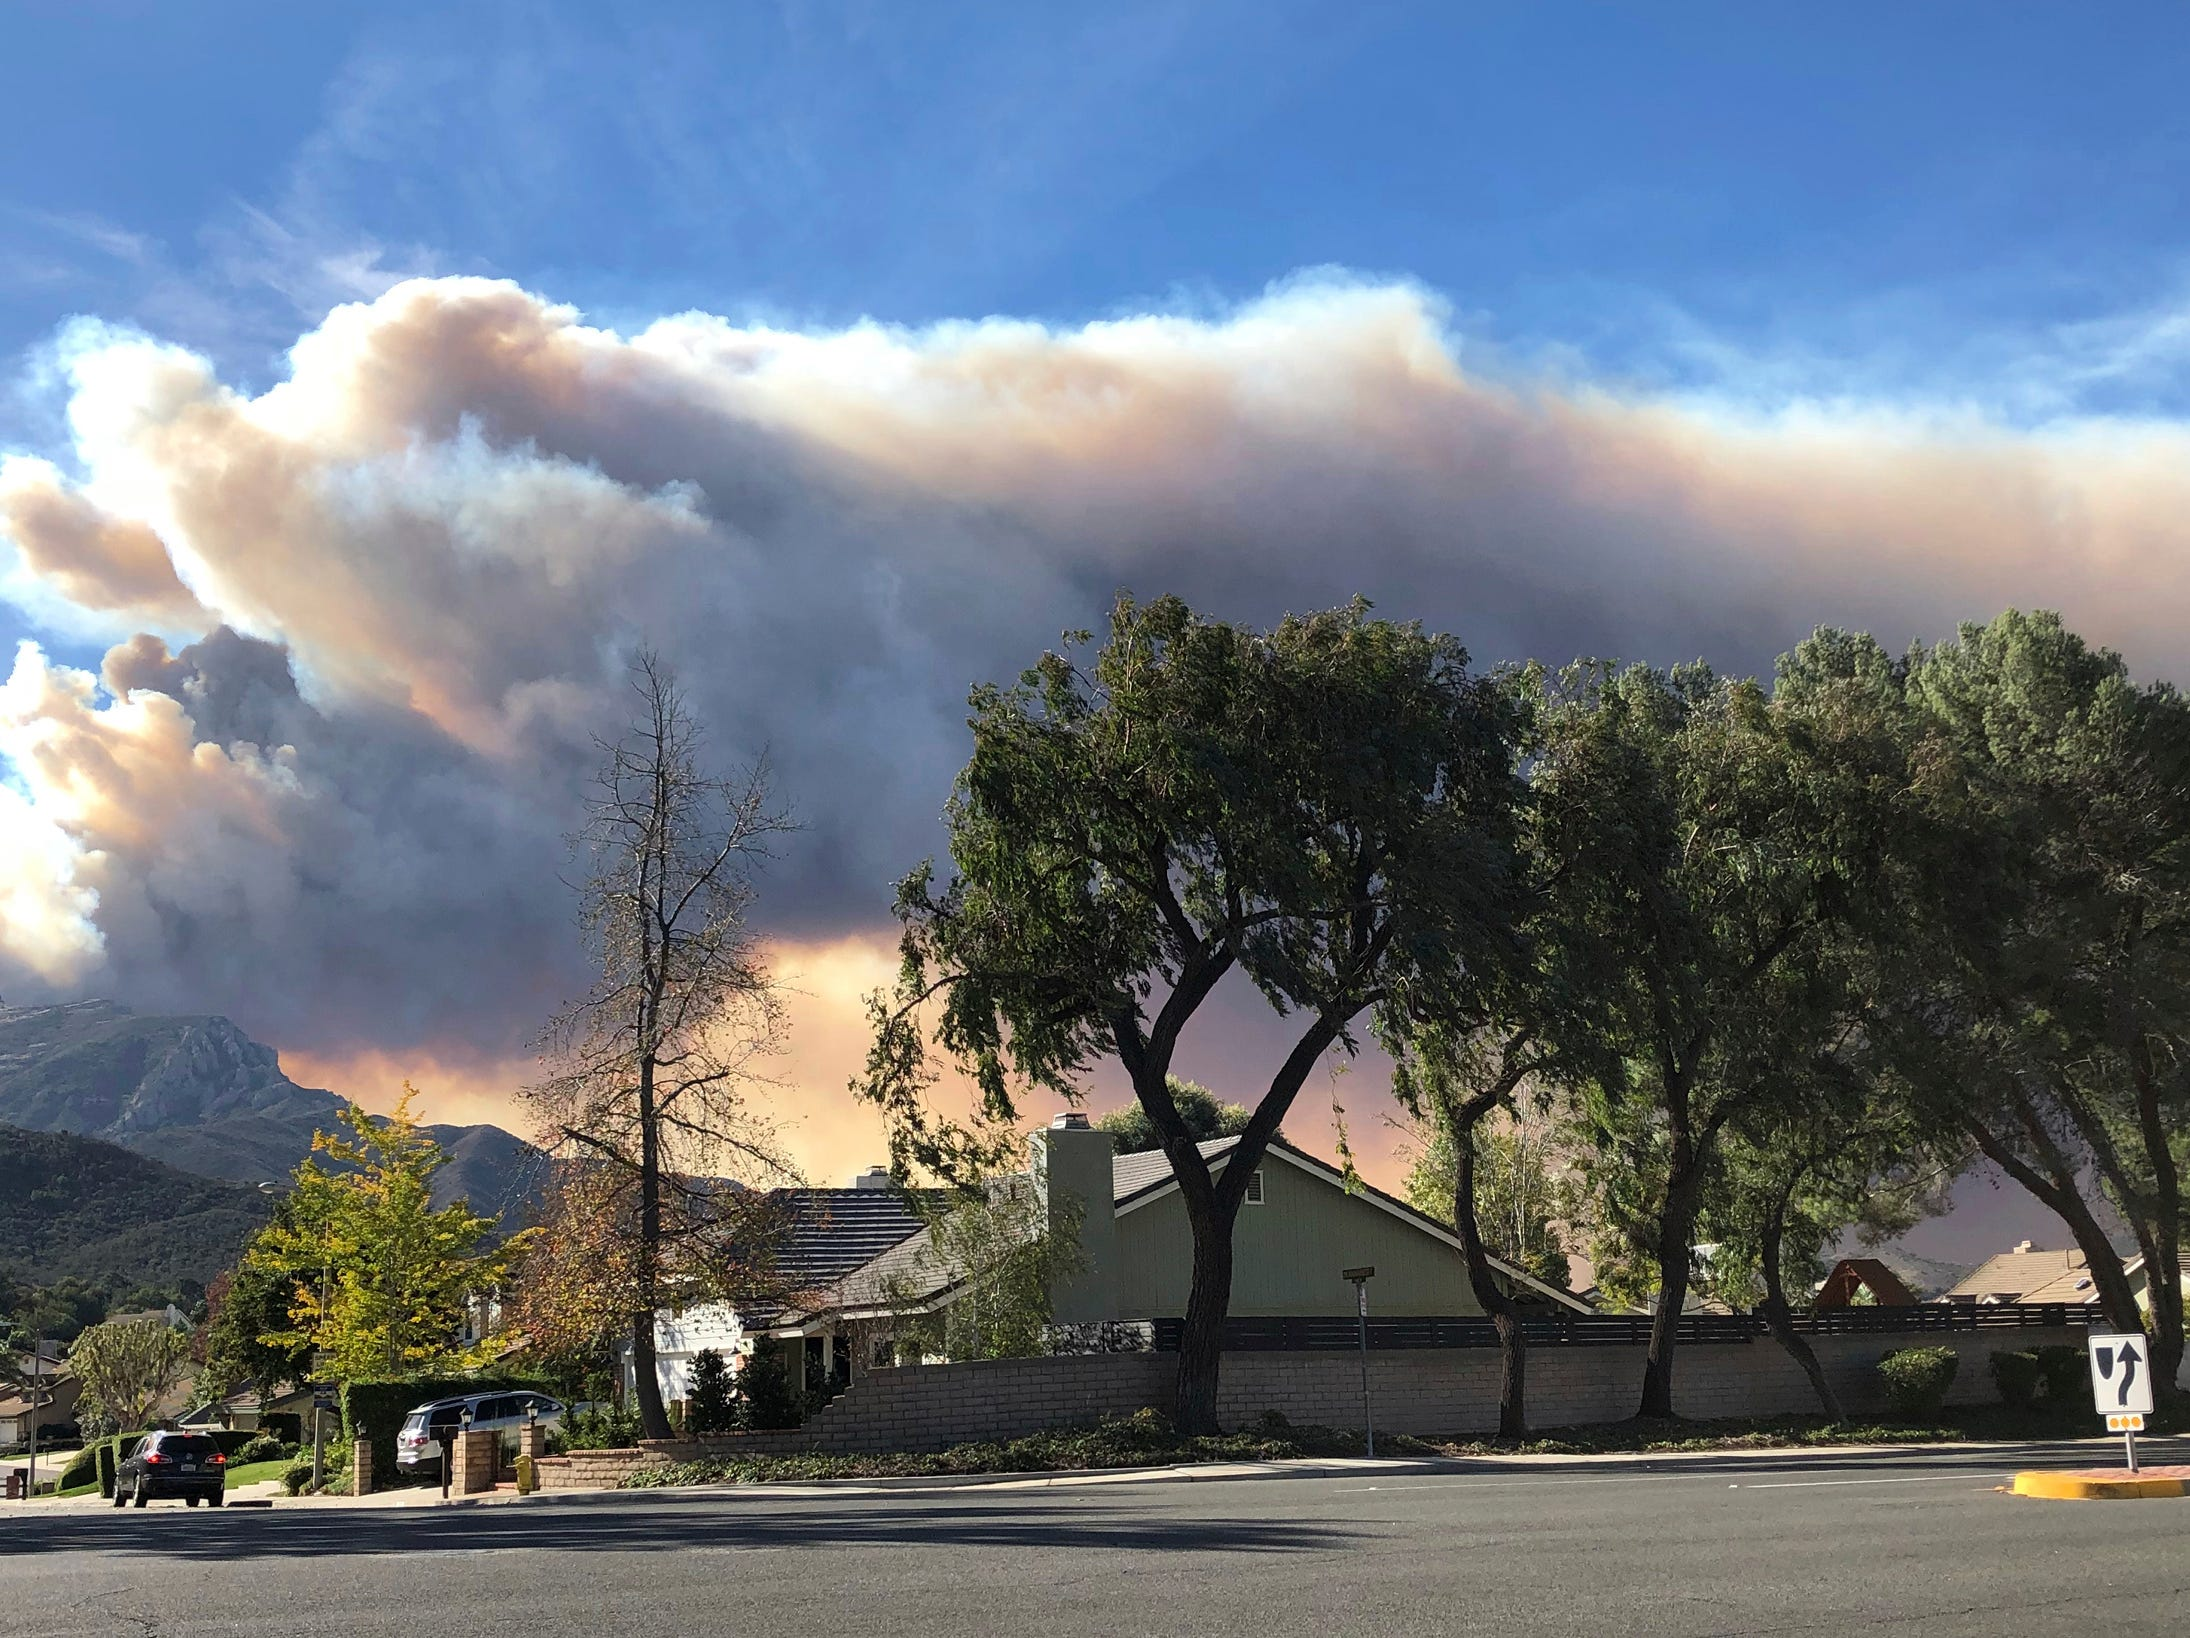 A large wildfire plume from a recent flareup near Lake Sherwood, Calif., is visible from Thousand Oaks, Calif., Tuesday, Nov. 13, 2018.